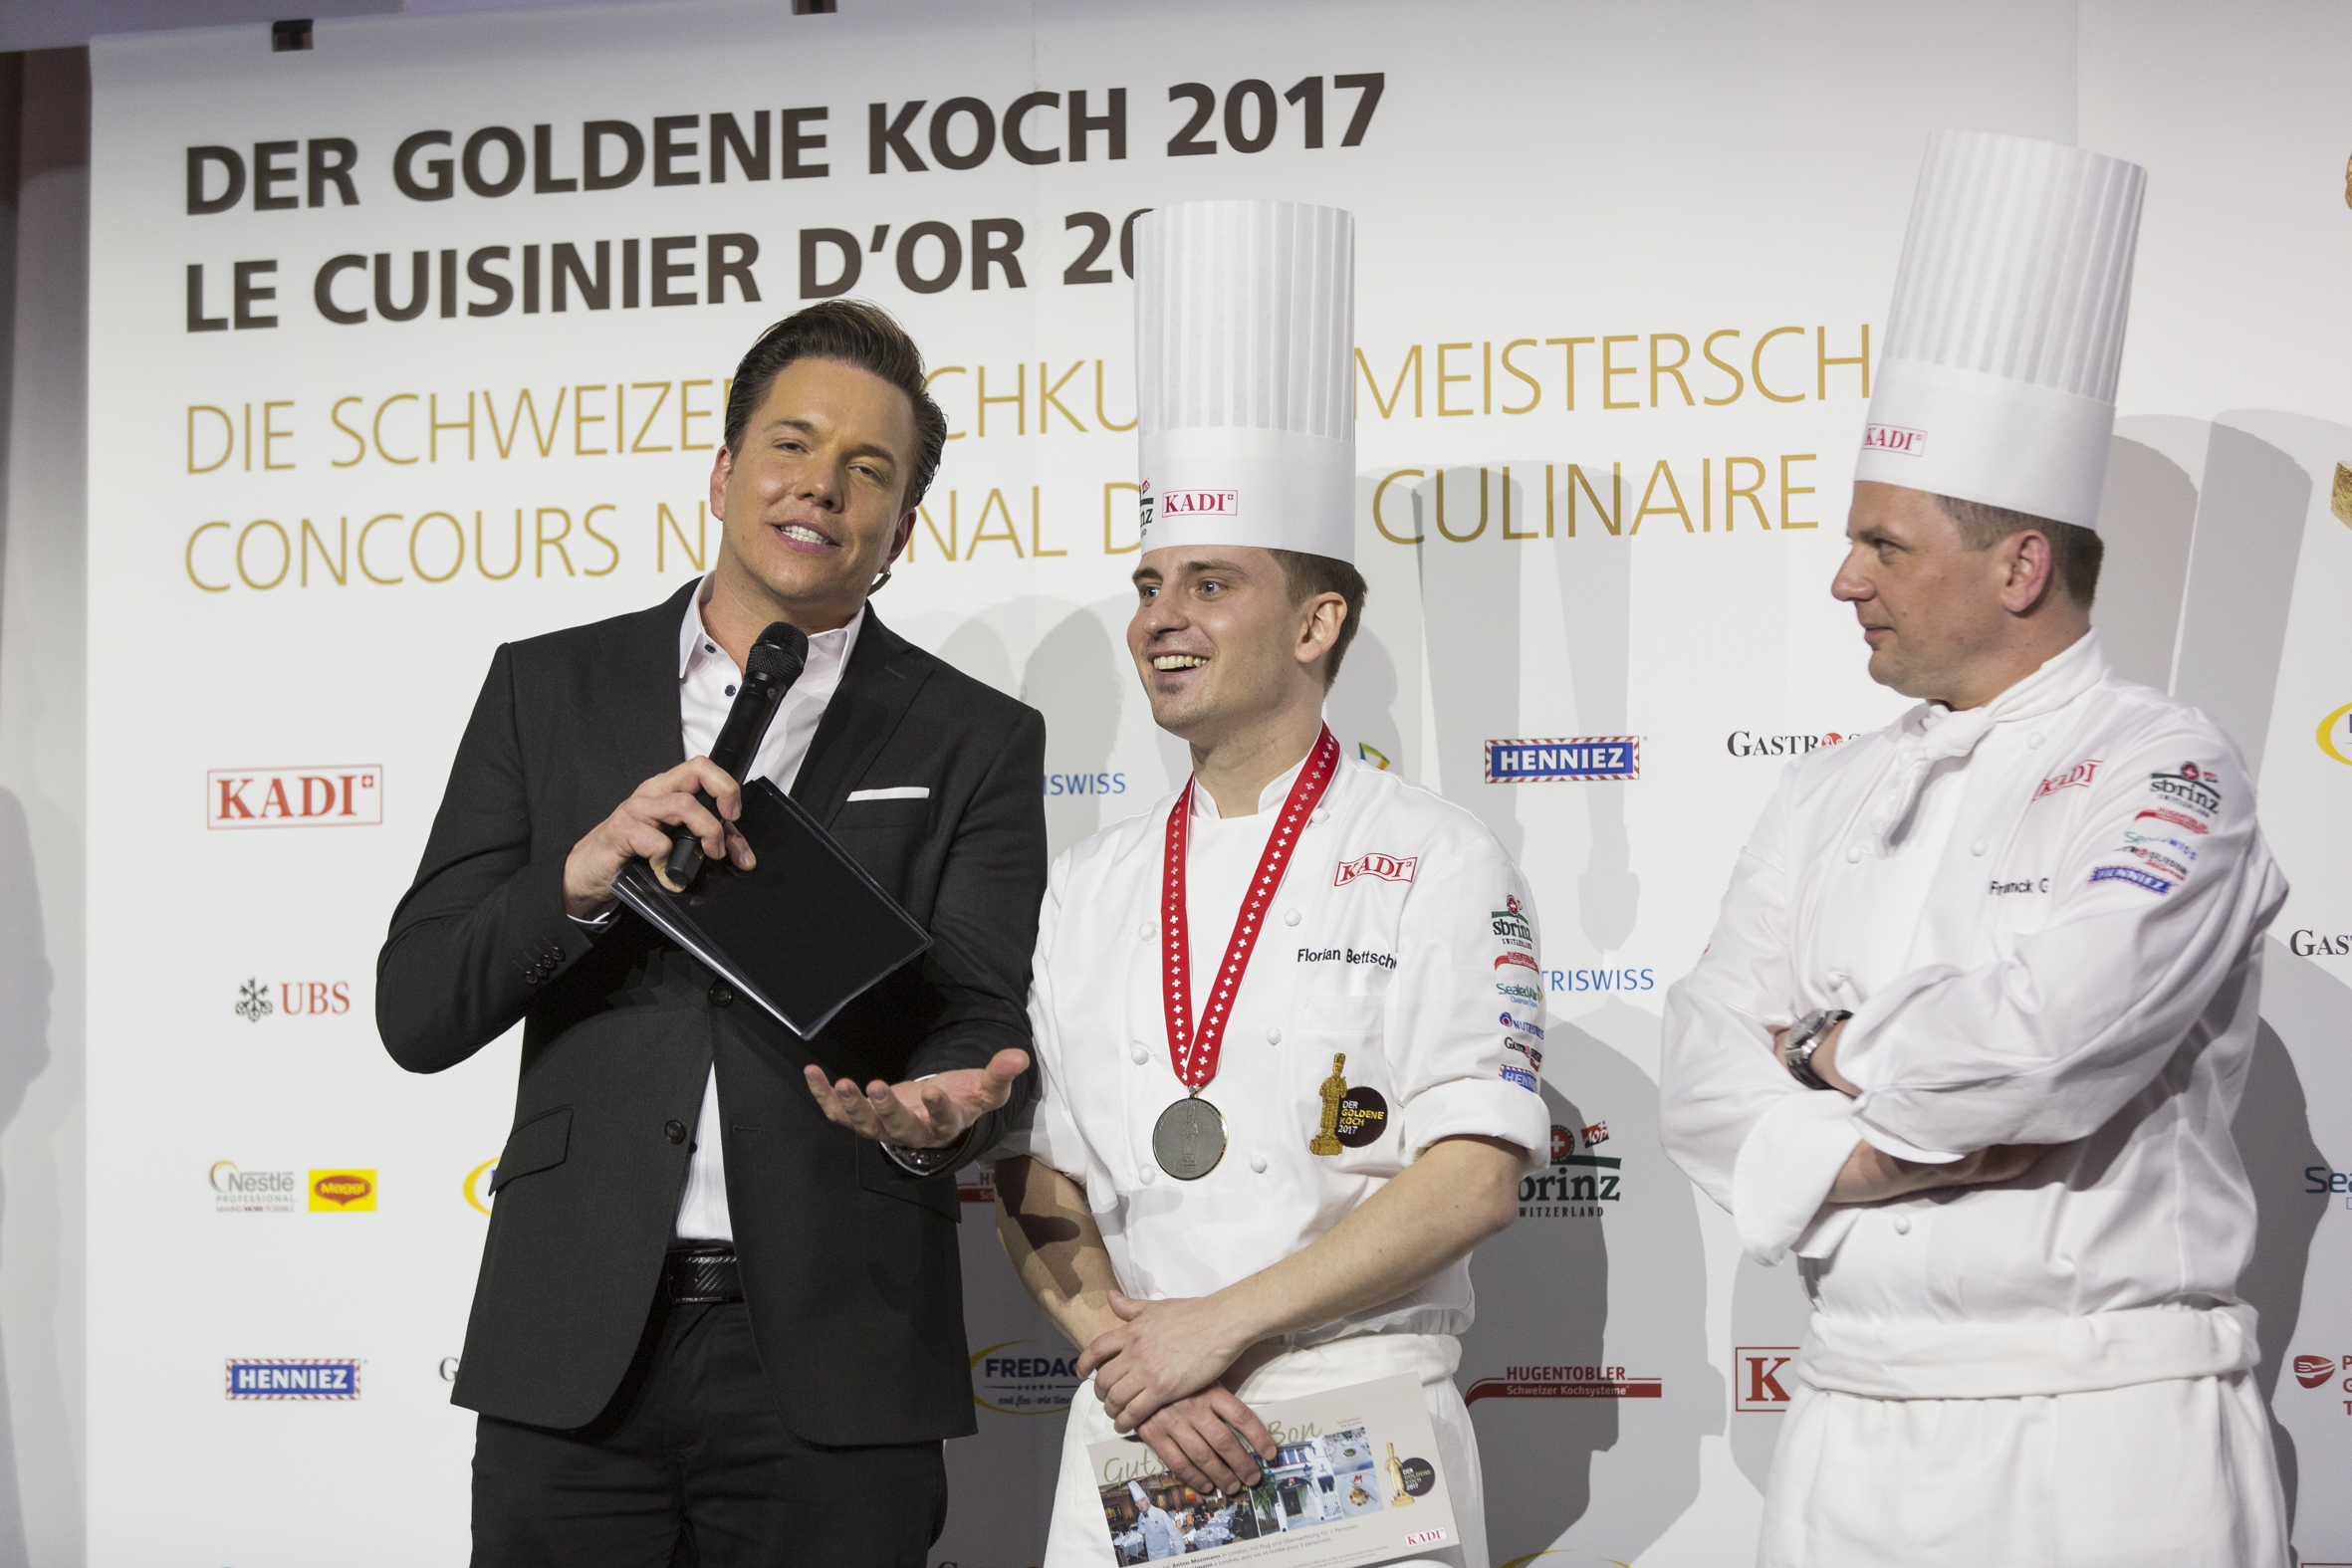 42 goldener koch 2017